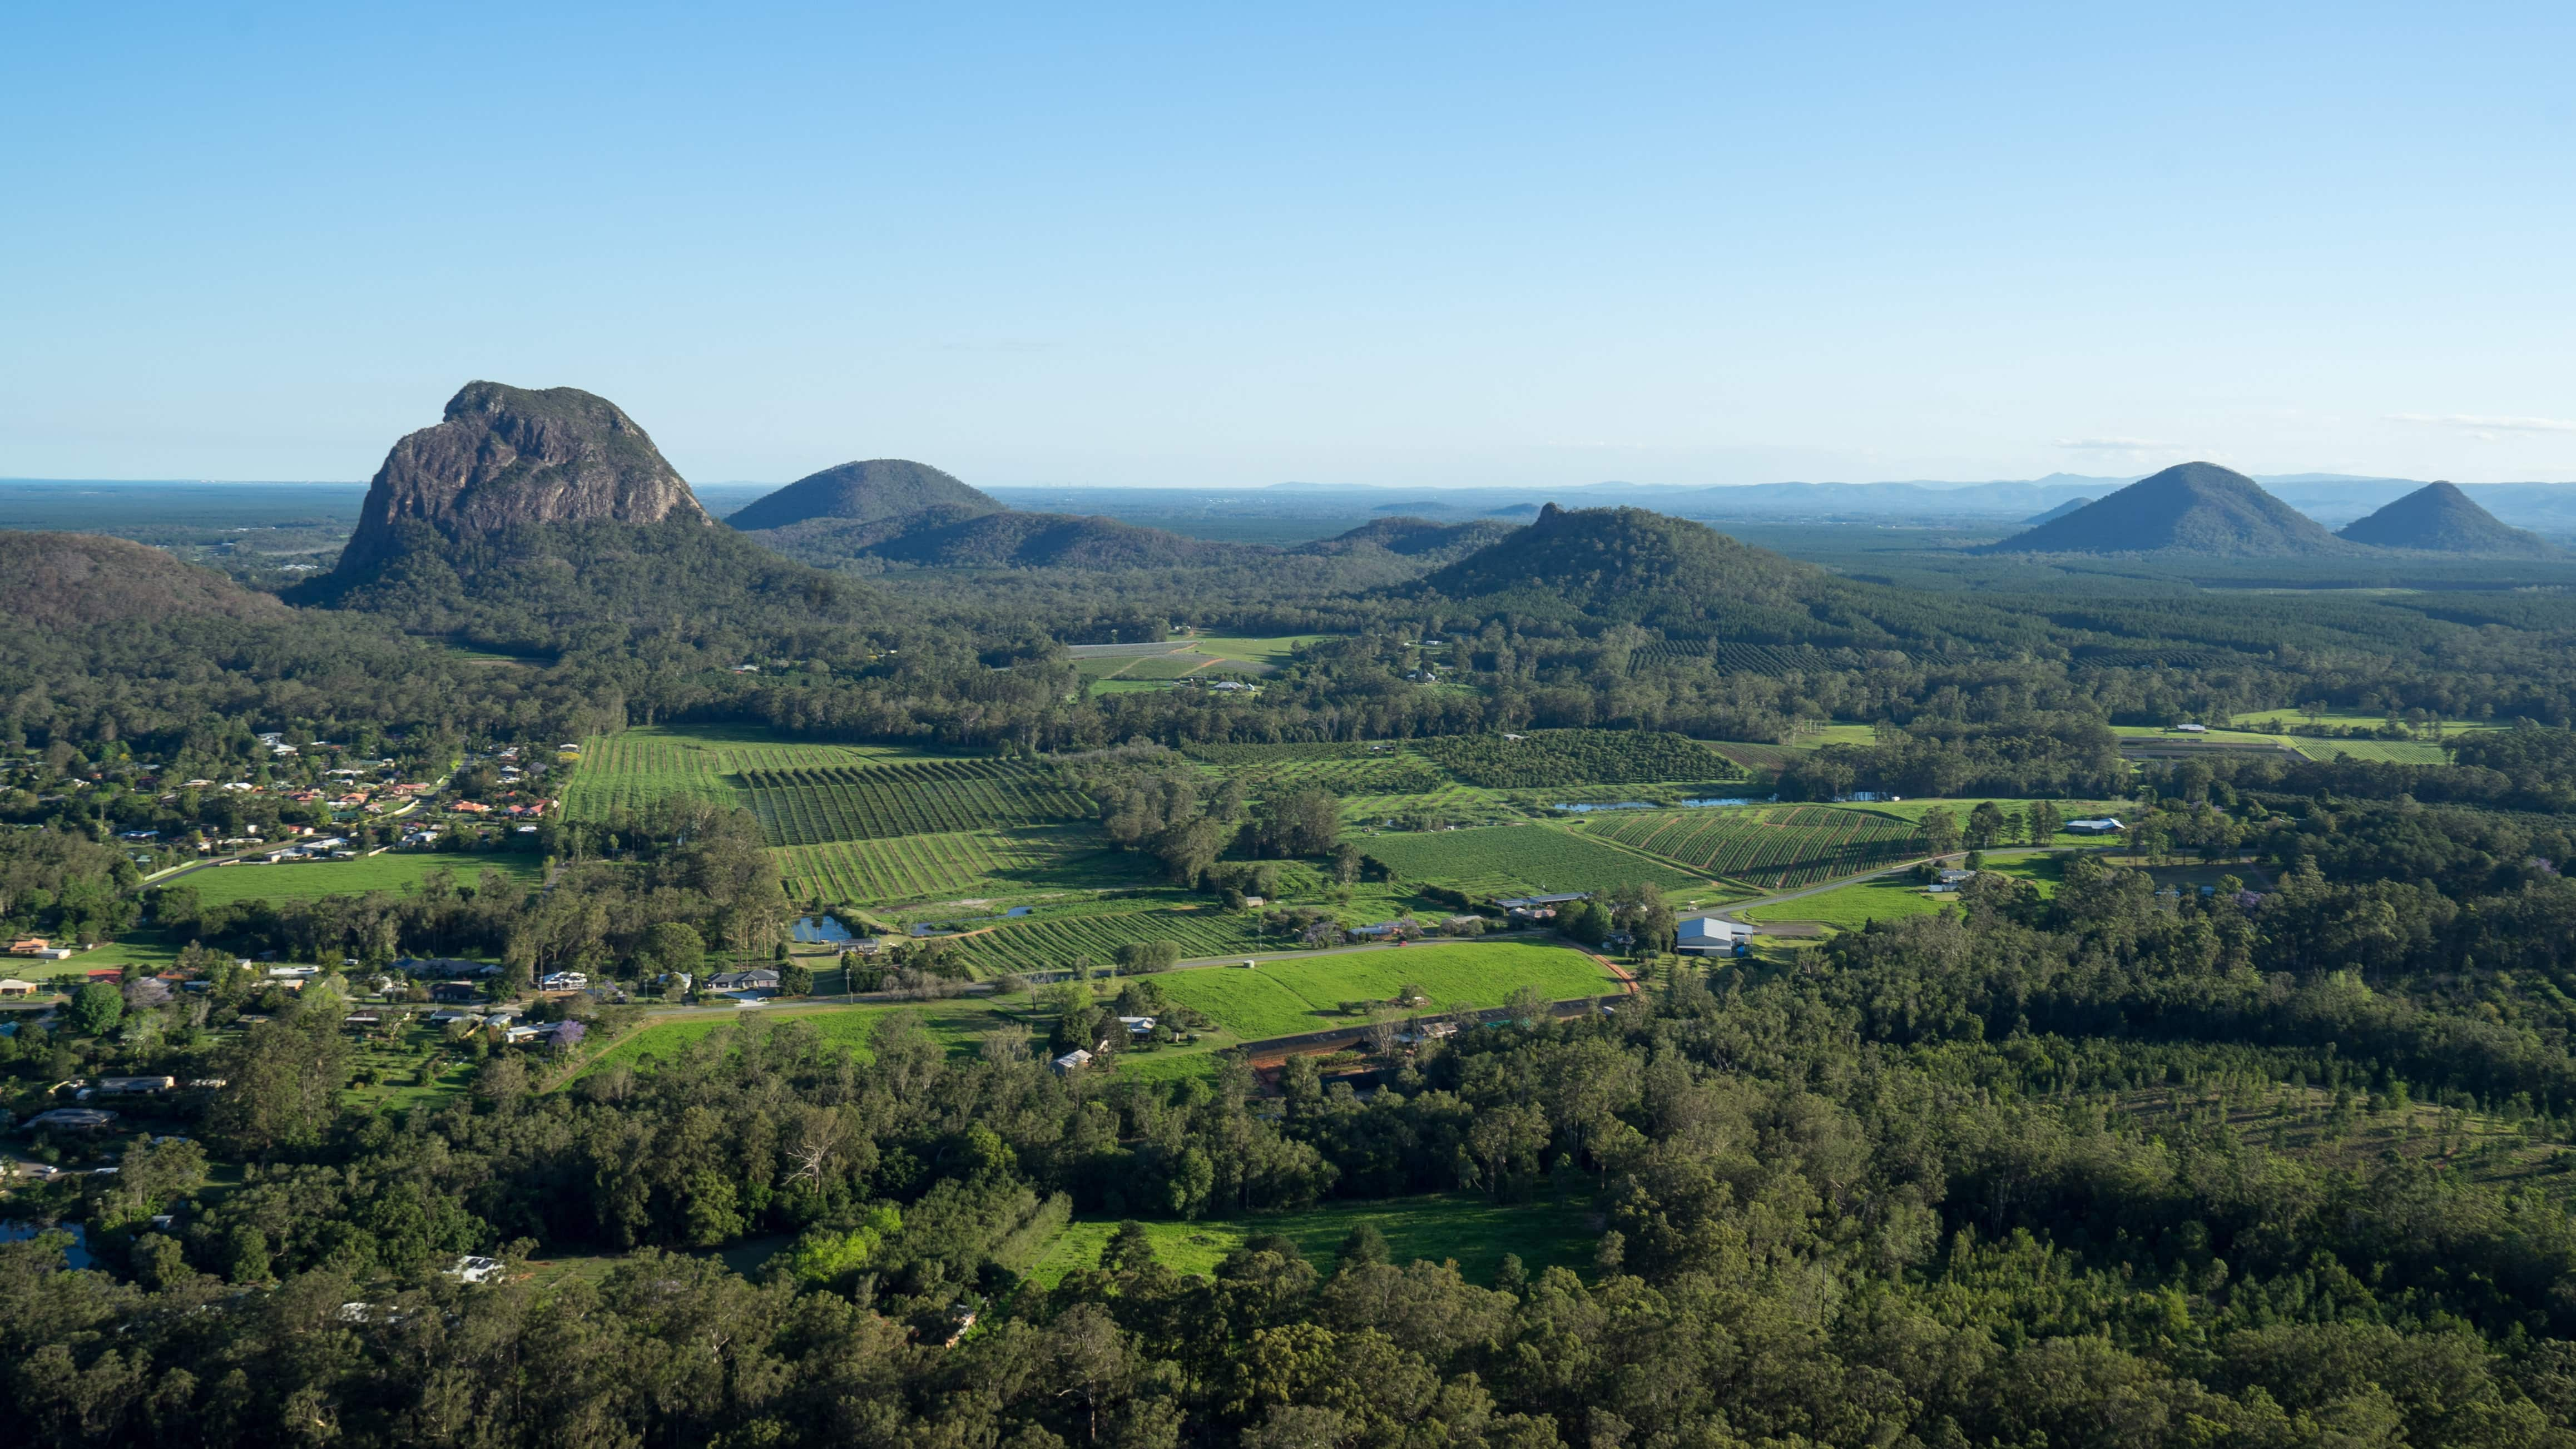 Natur pur! Unterwegs im Noosa Nationalpark und den Glass House Mountains